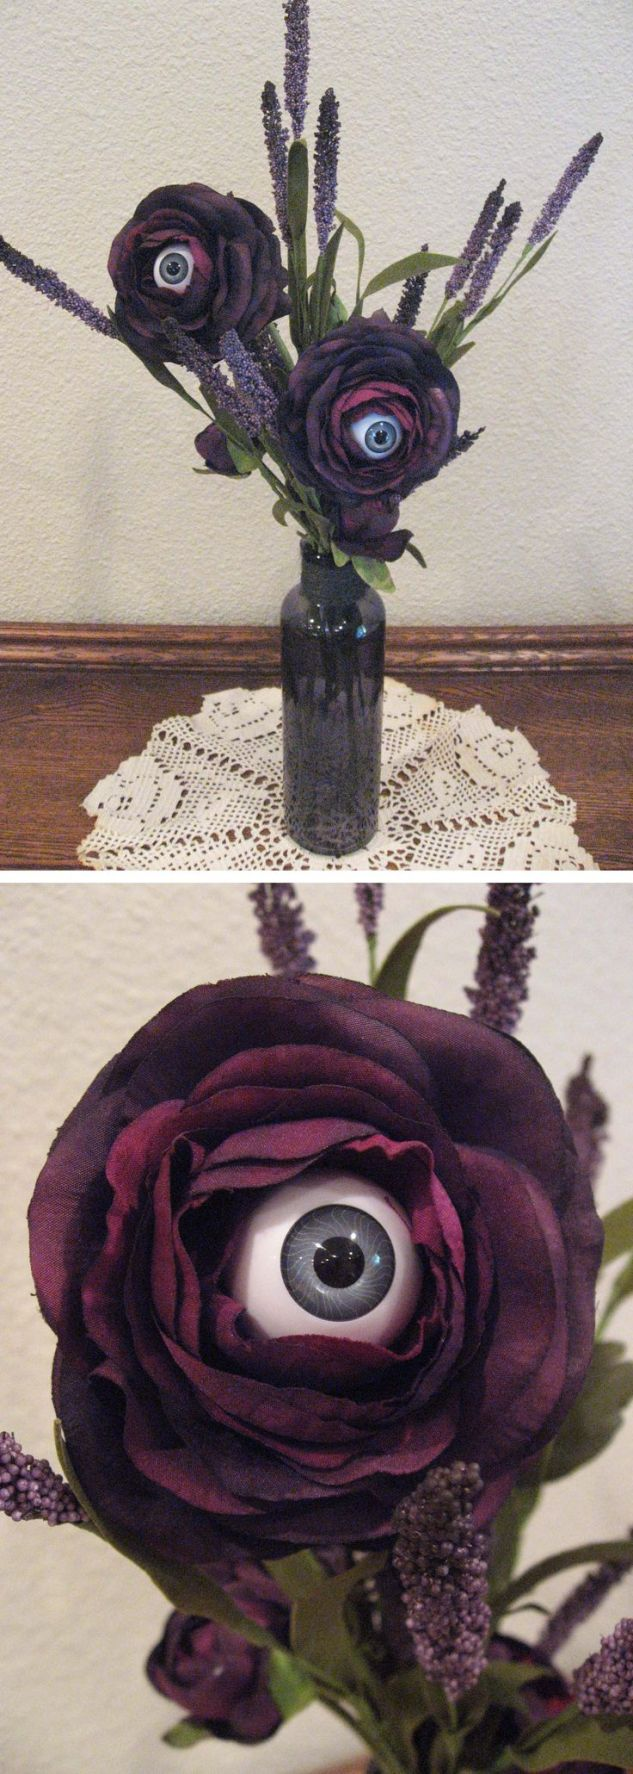 19-diy-halloween-decoration-ideas